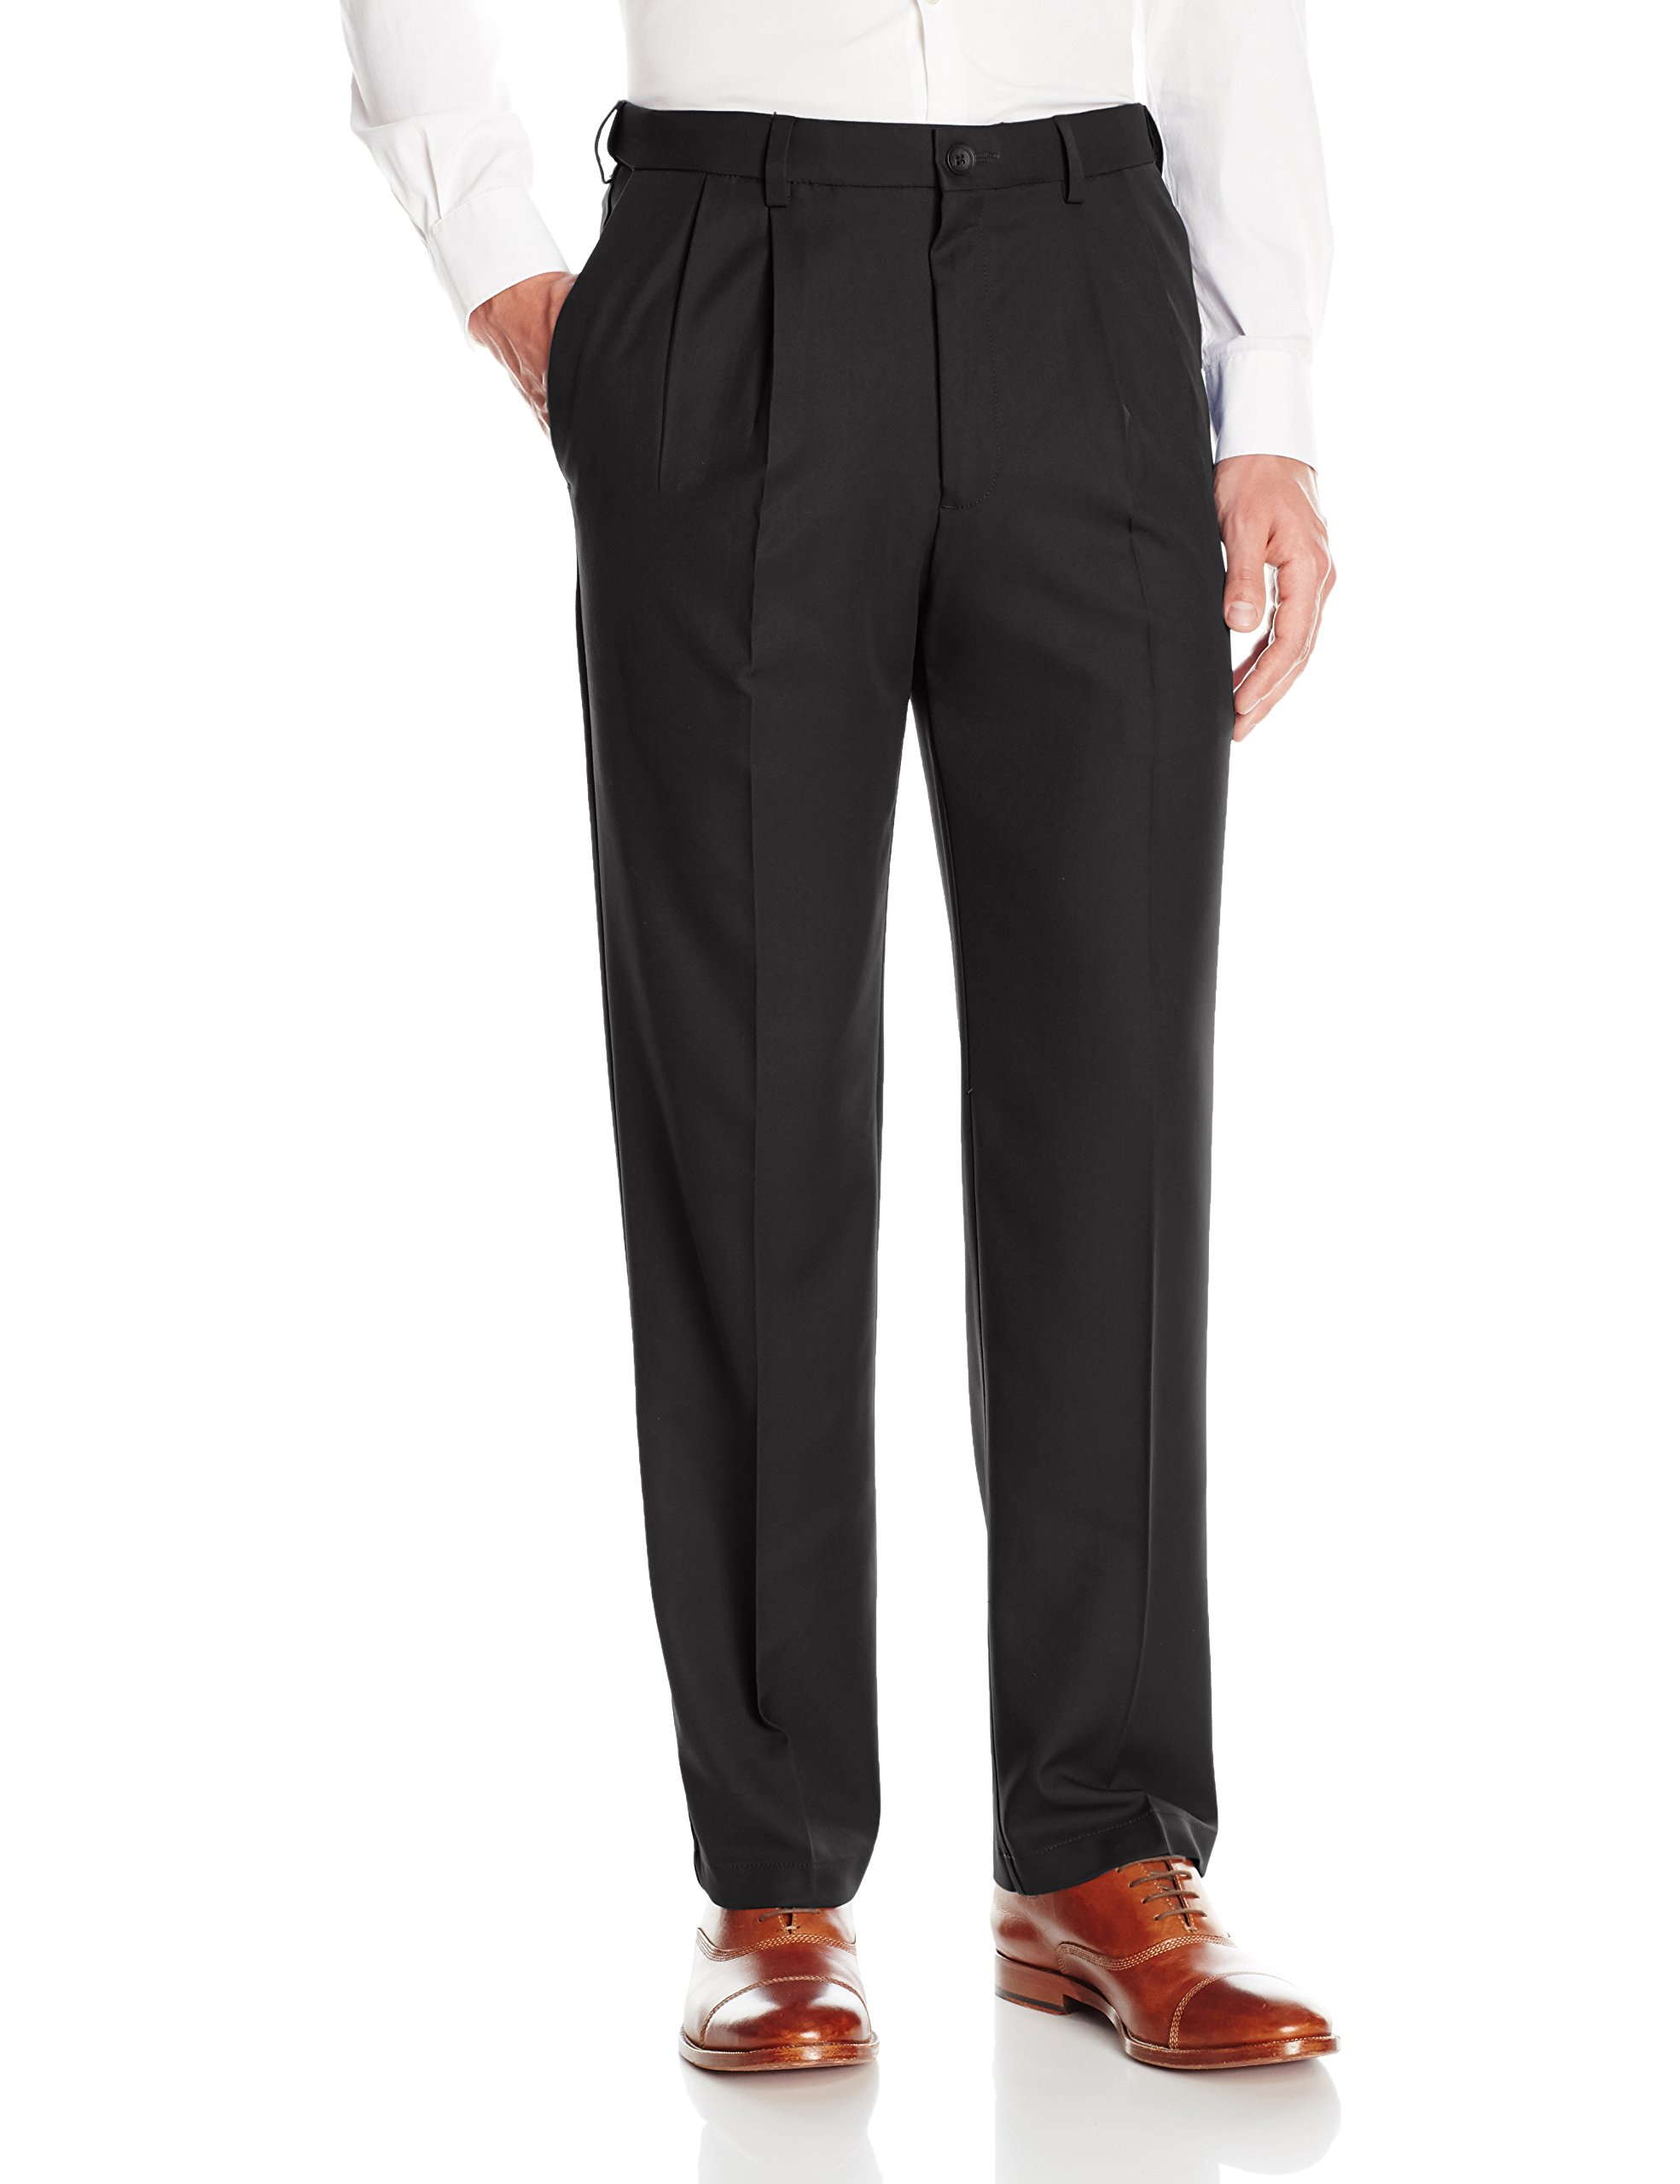 Haggar Men's Cool 18 Pro Classic Fit Pleat Front Expandable Waist Pant, Black, 40Wx34L